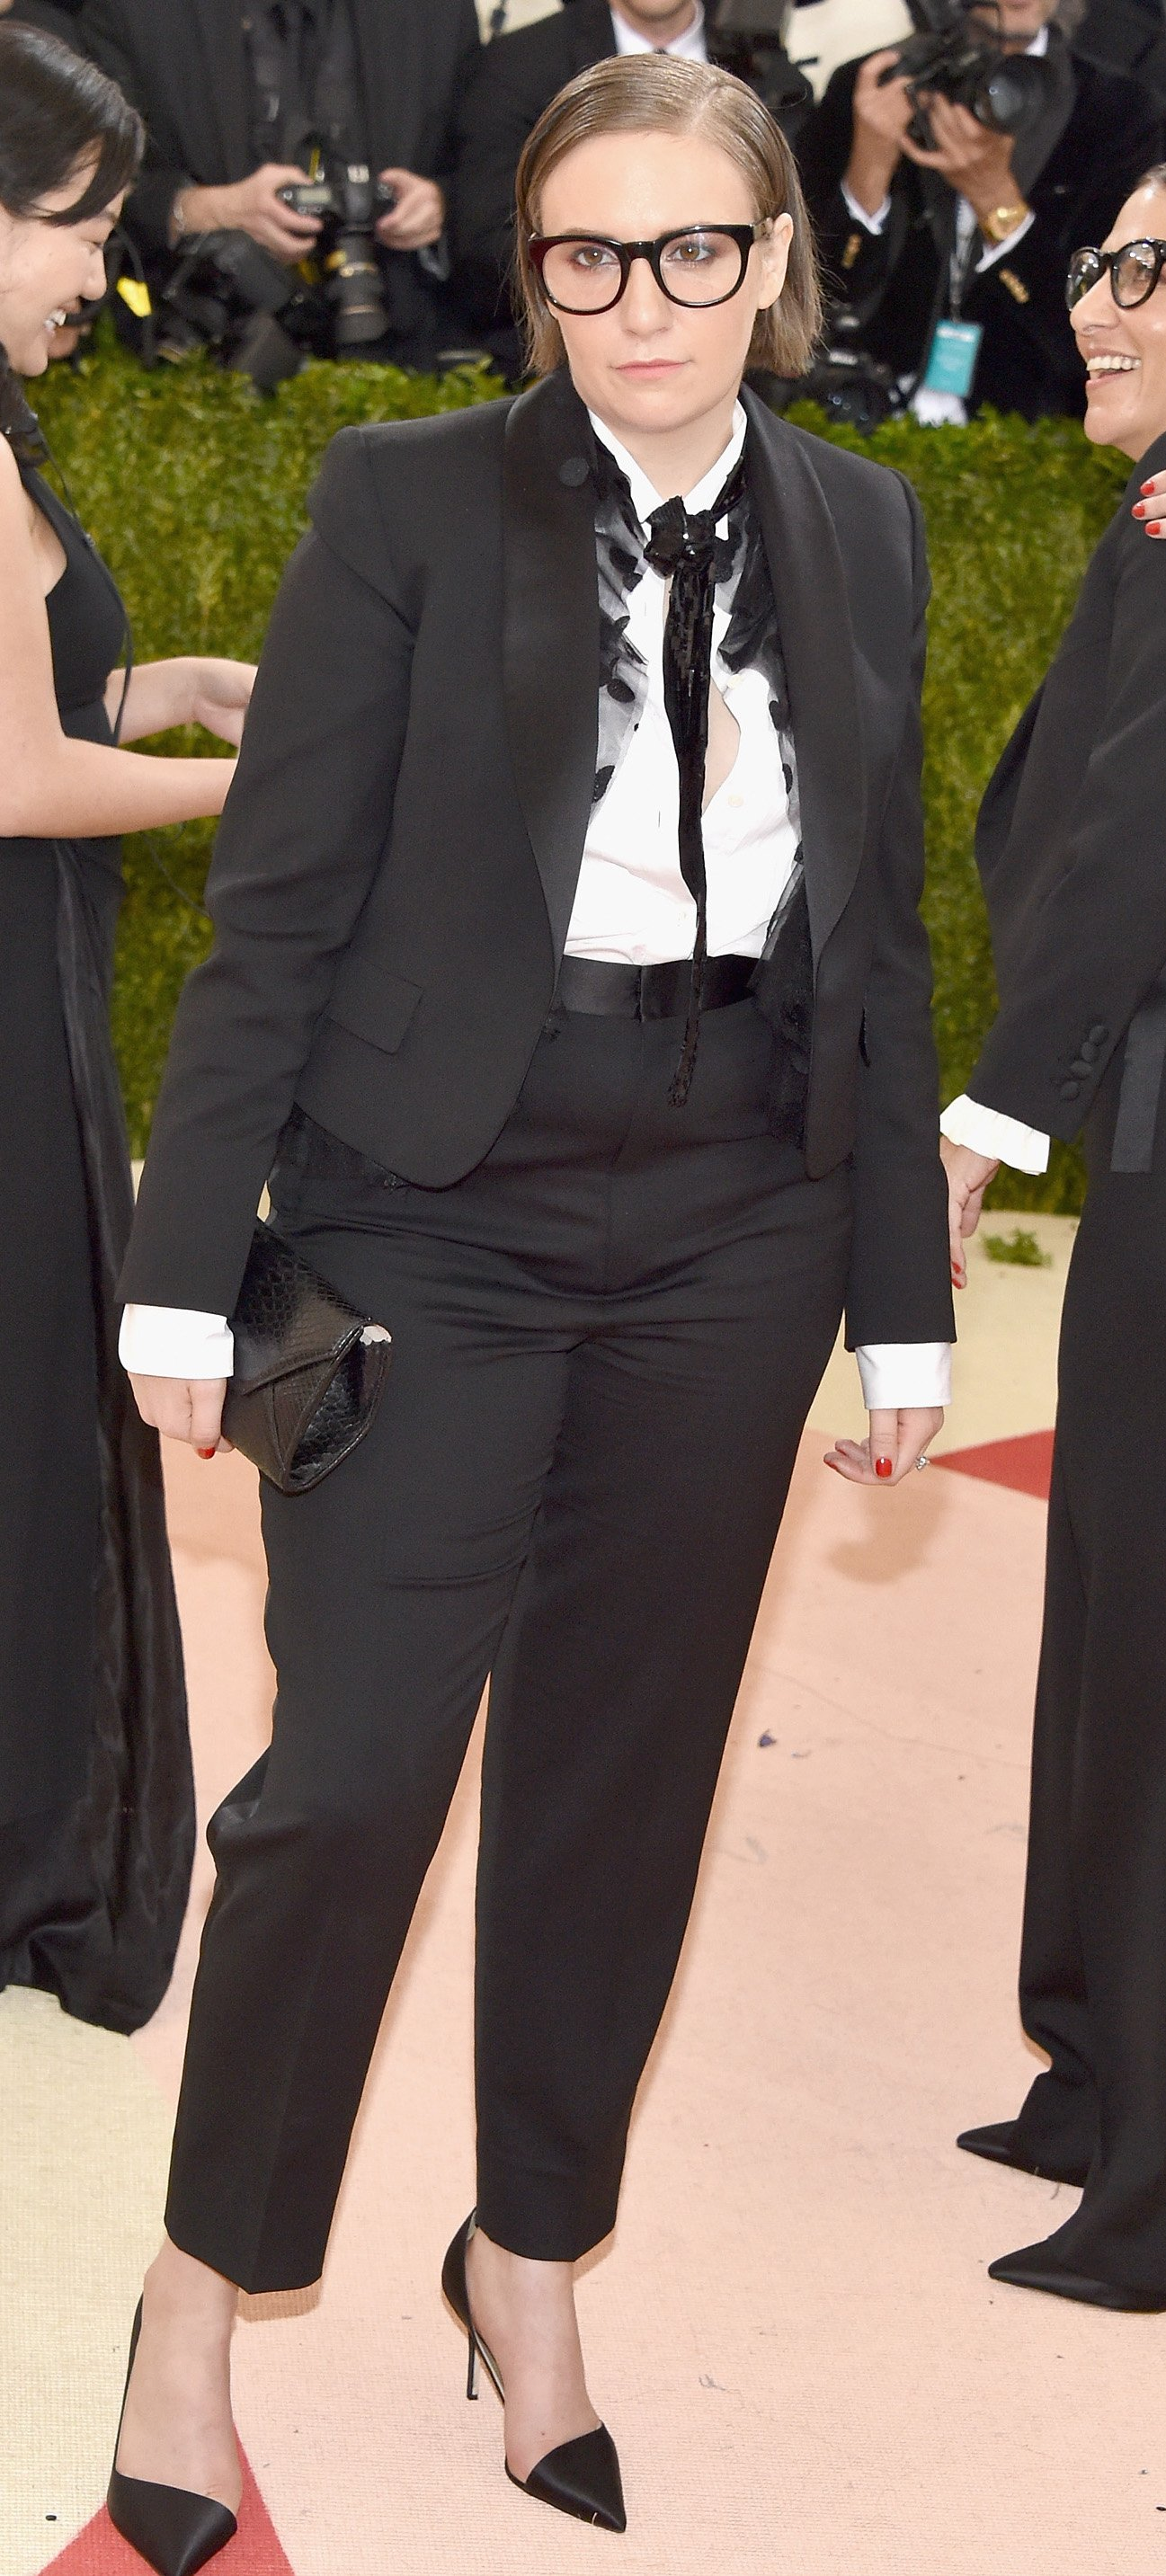 croppped Lena Dunham Met Gala on May 2, 2016